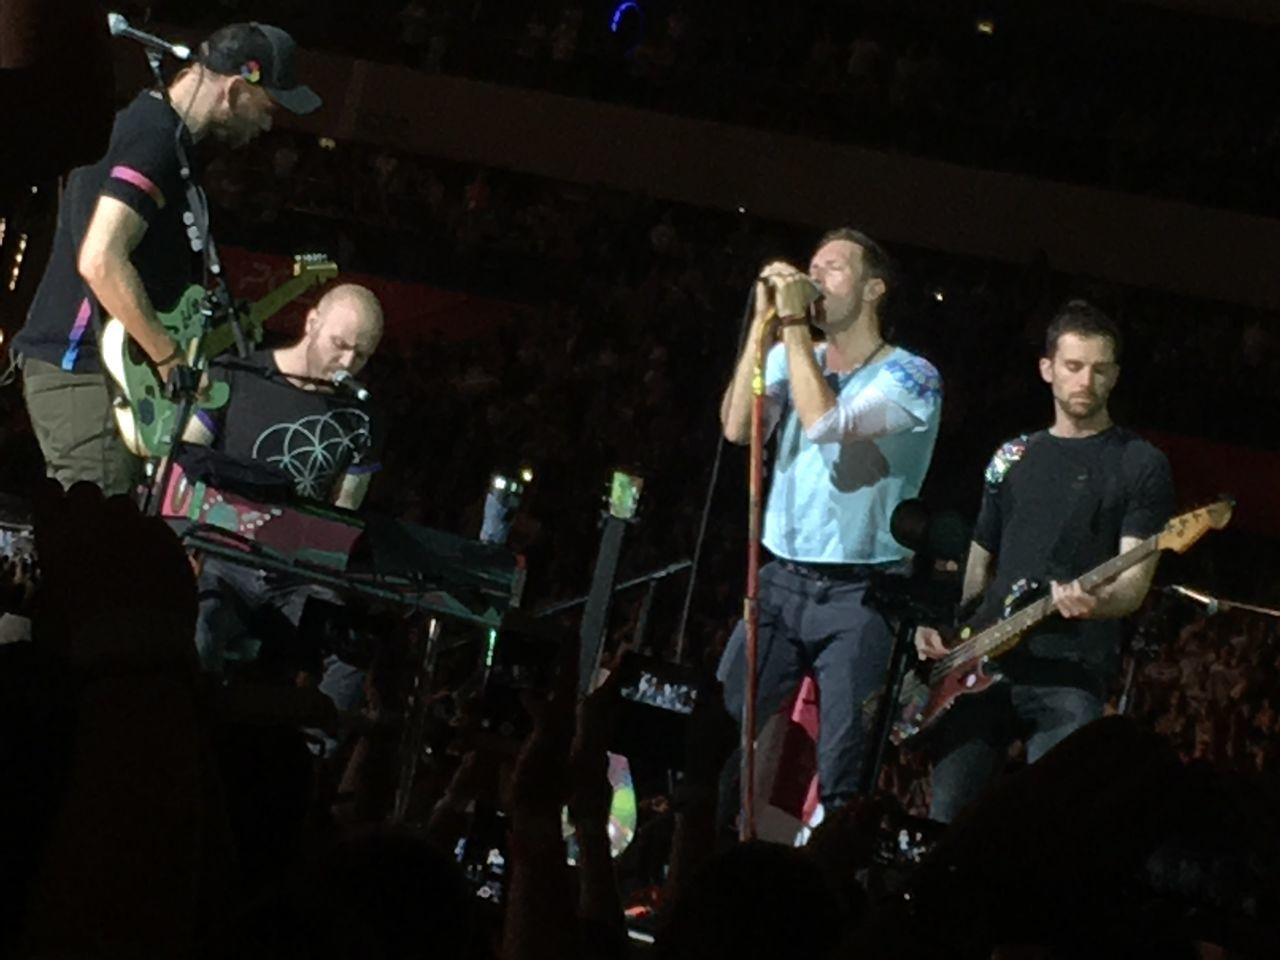 Coldplay Concert  Music Arts Culture And Entertainment Performance Night Rock Music Musician Singer  Rock Musician Guitar Group Of People Electric Guitar Musical Instrument Singing Performance Group Microphone Rock Group Illuminated Outdoors People Adult